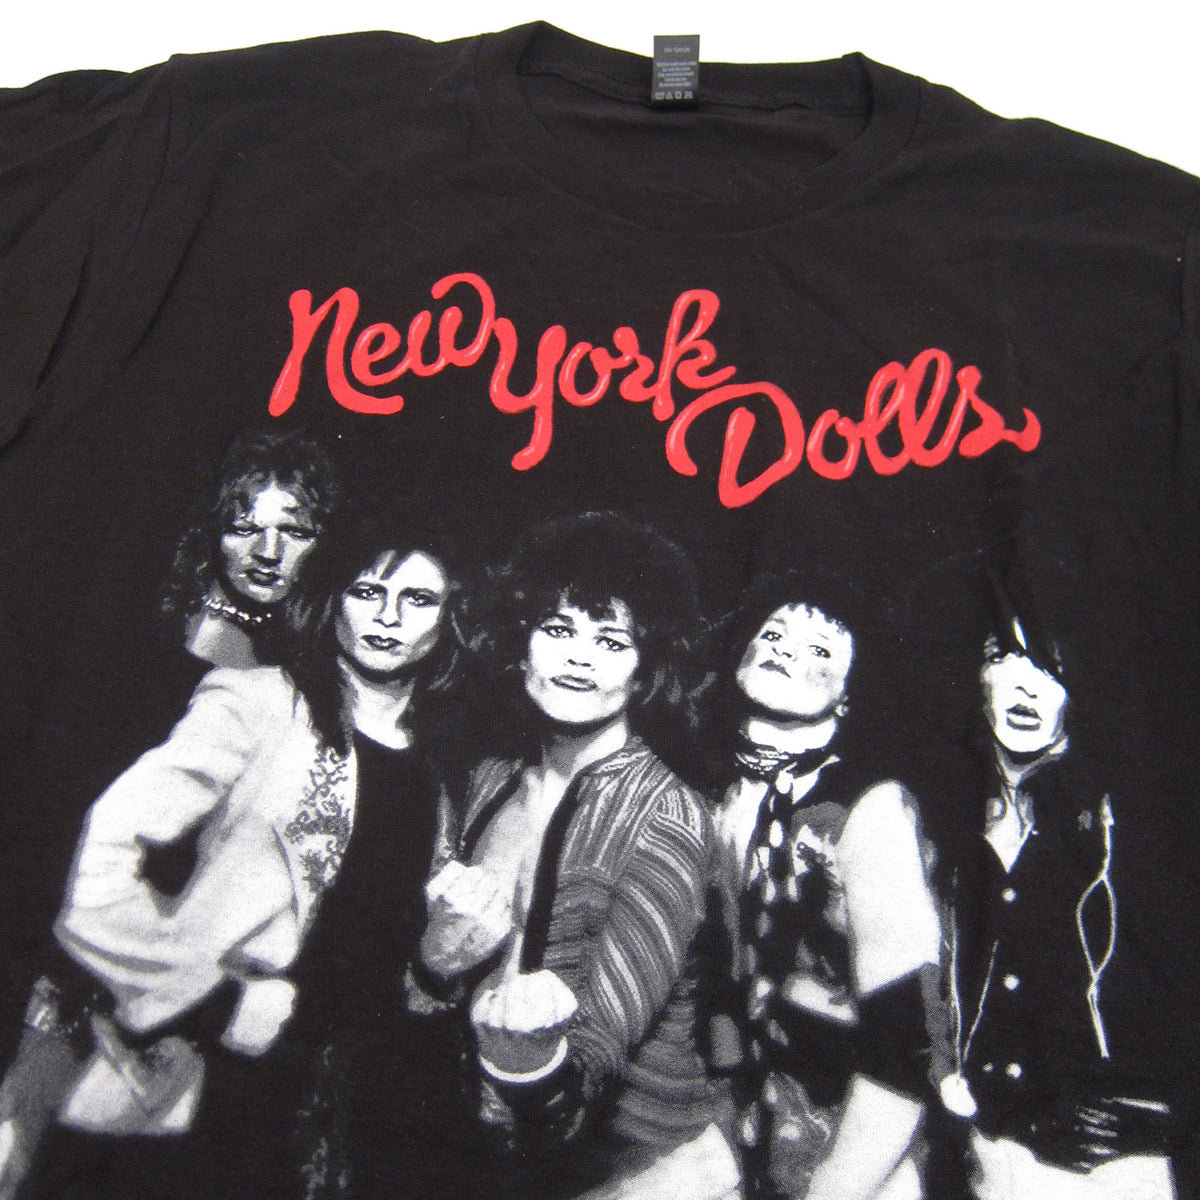 New York Dolls: Trash Photo Shirt - Black